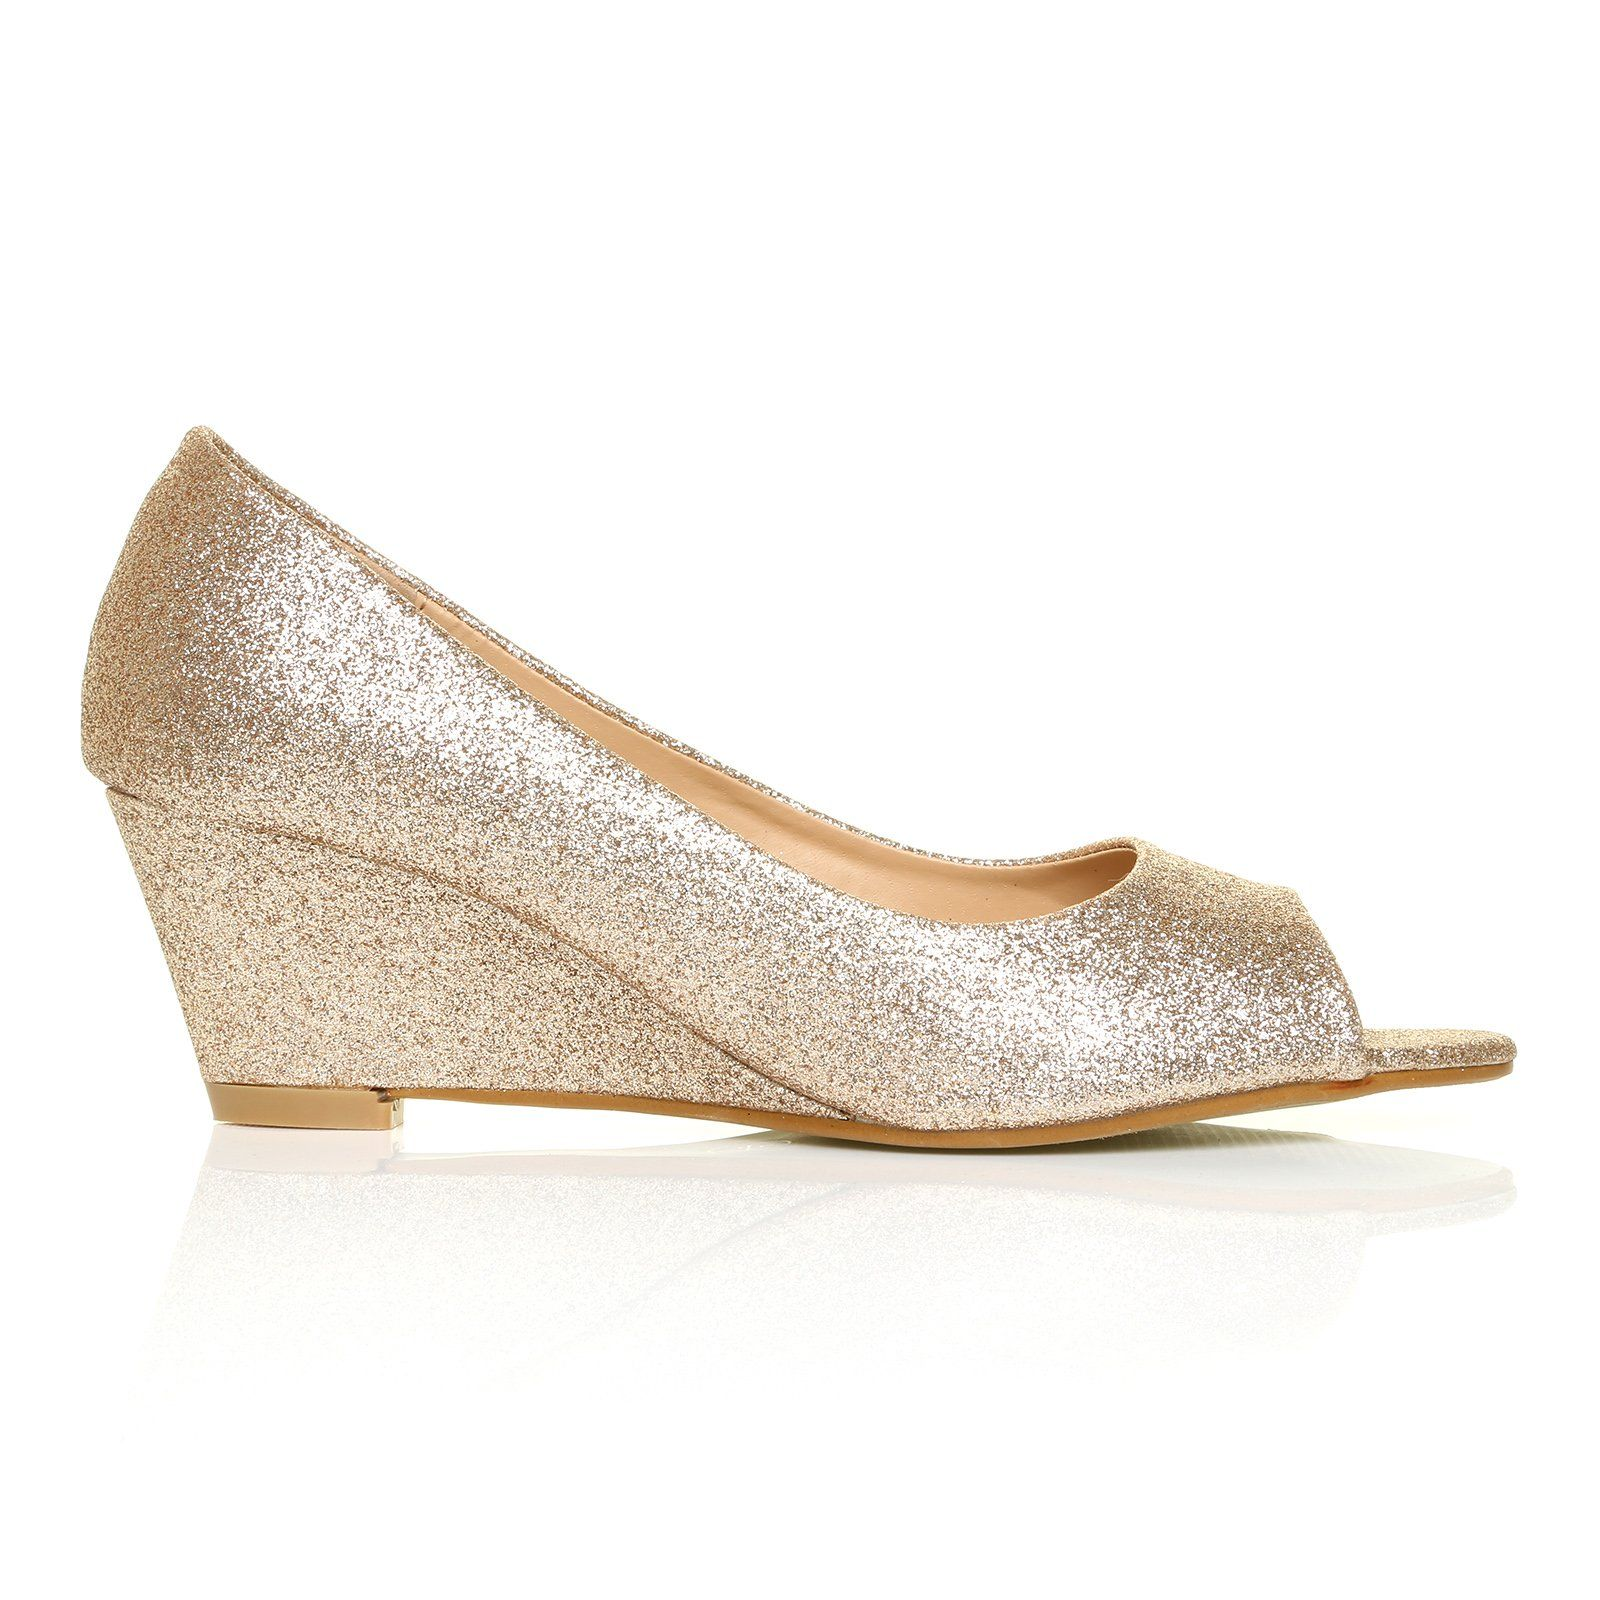 HONEY Womens Glitter Wedge Mid Heel Champagne Shoes Size 9